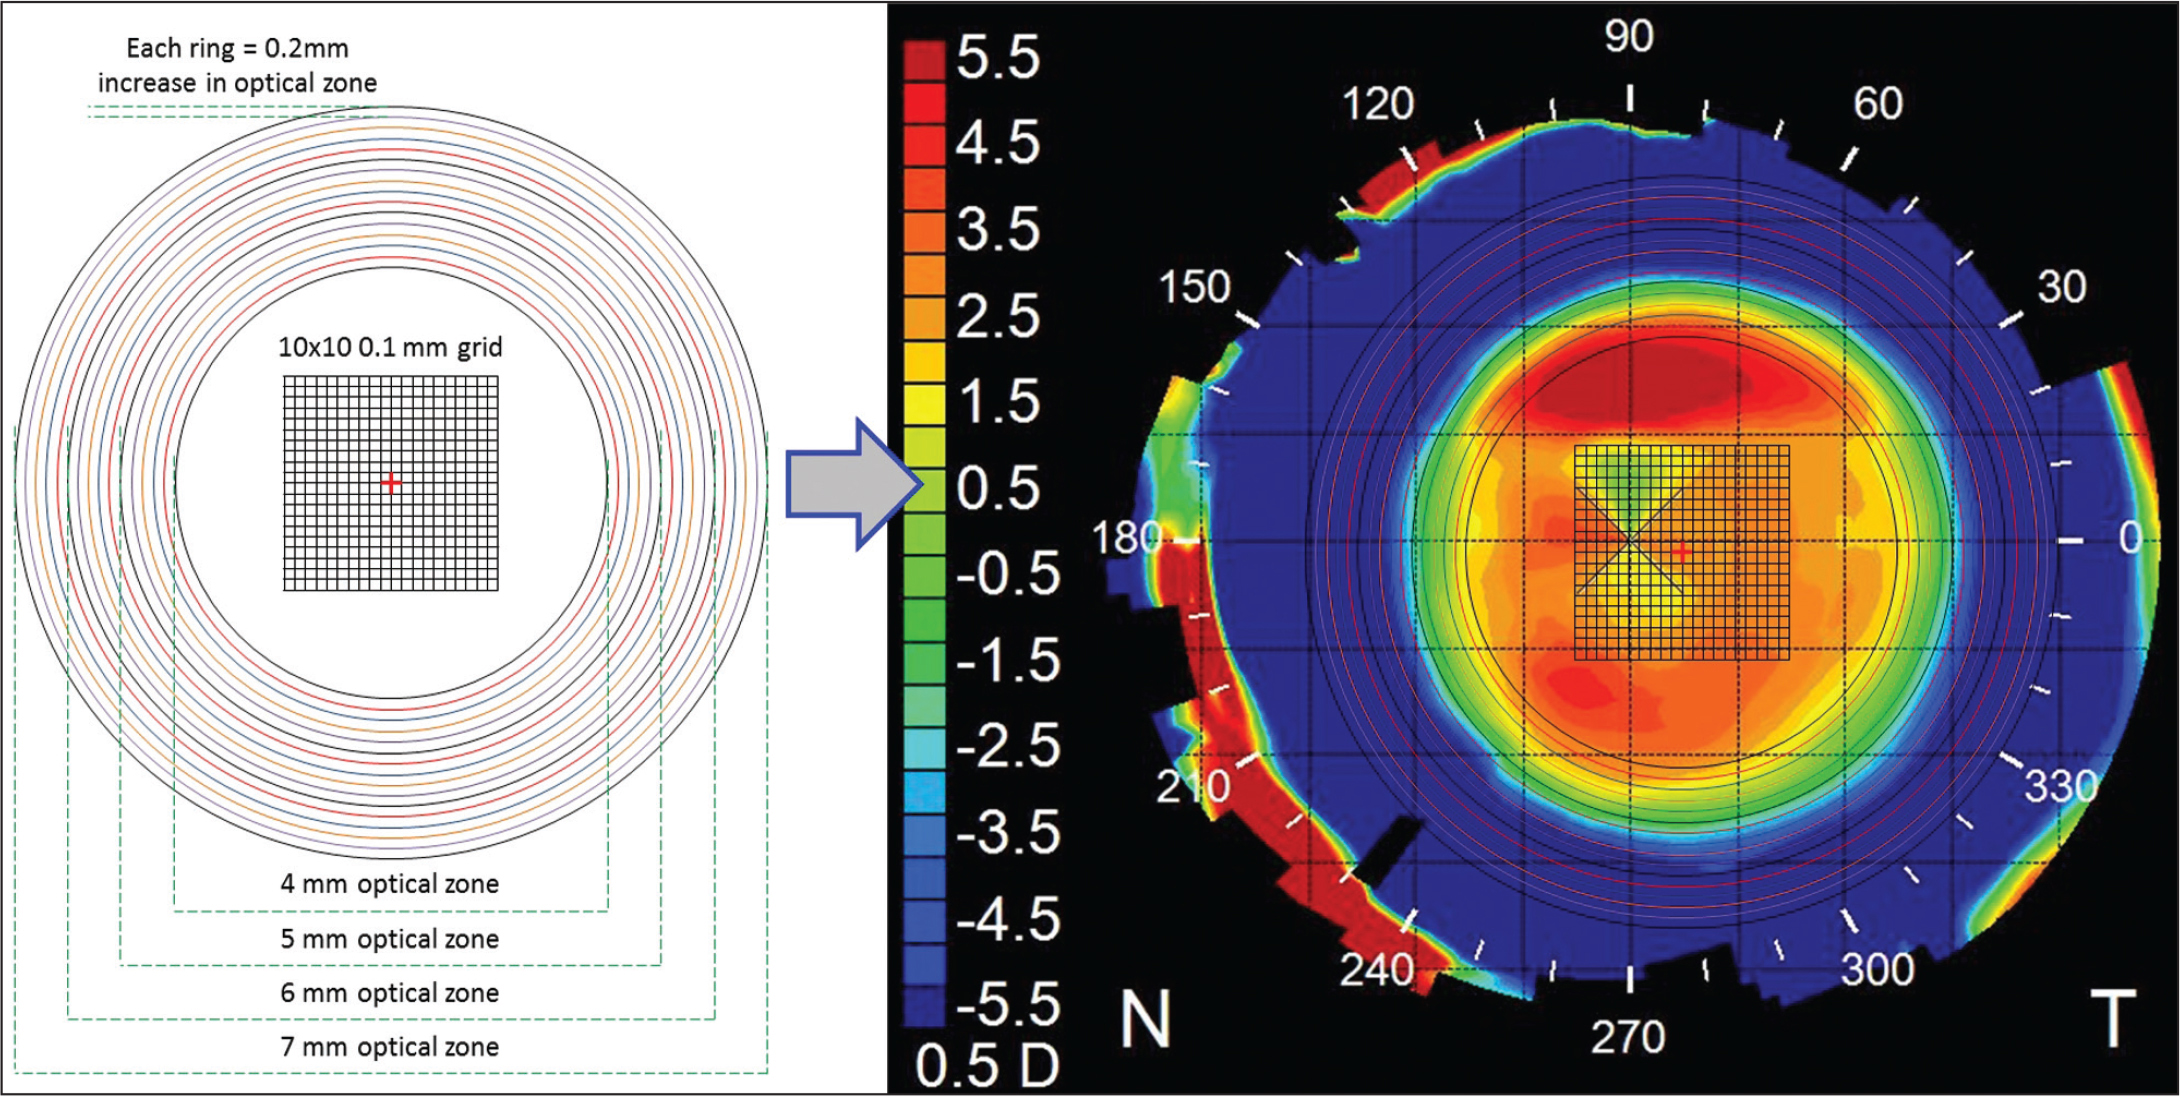 A central grid and set of concentric circles was generated and overlaid on the tangential difference map to identify the location of the optical zone. The central grid consisted of 10 × 10 0.1-mm steps. The concentric circles were created with radii increasing in 0.2-mm steps from 4 to 7 mm. The concentric circles were used to visually align and superimpose the best-fitting circle to the optical zone defined as the central zone up to the mid-peripheral power inflection point. The centration offset of the optical zone to the corneal vertex was determined according to the central grid.